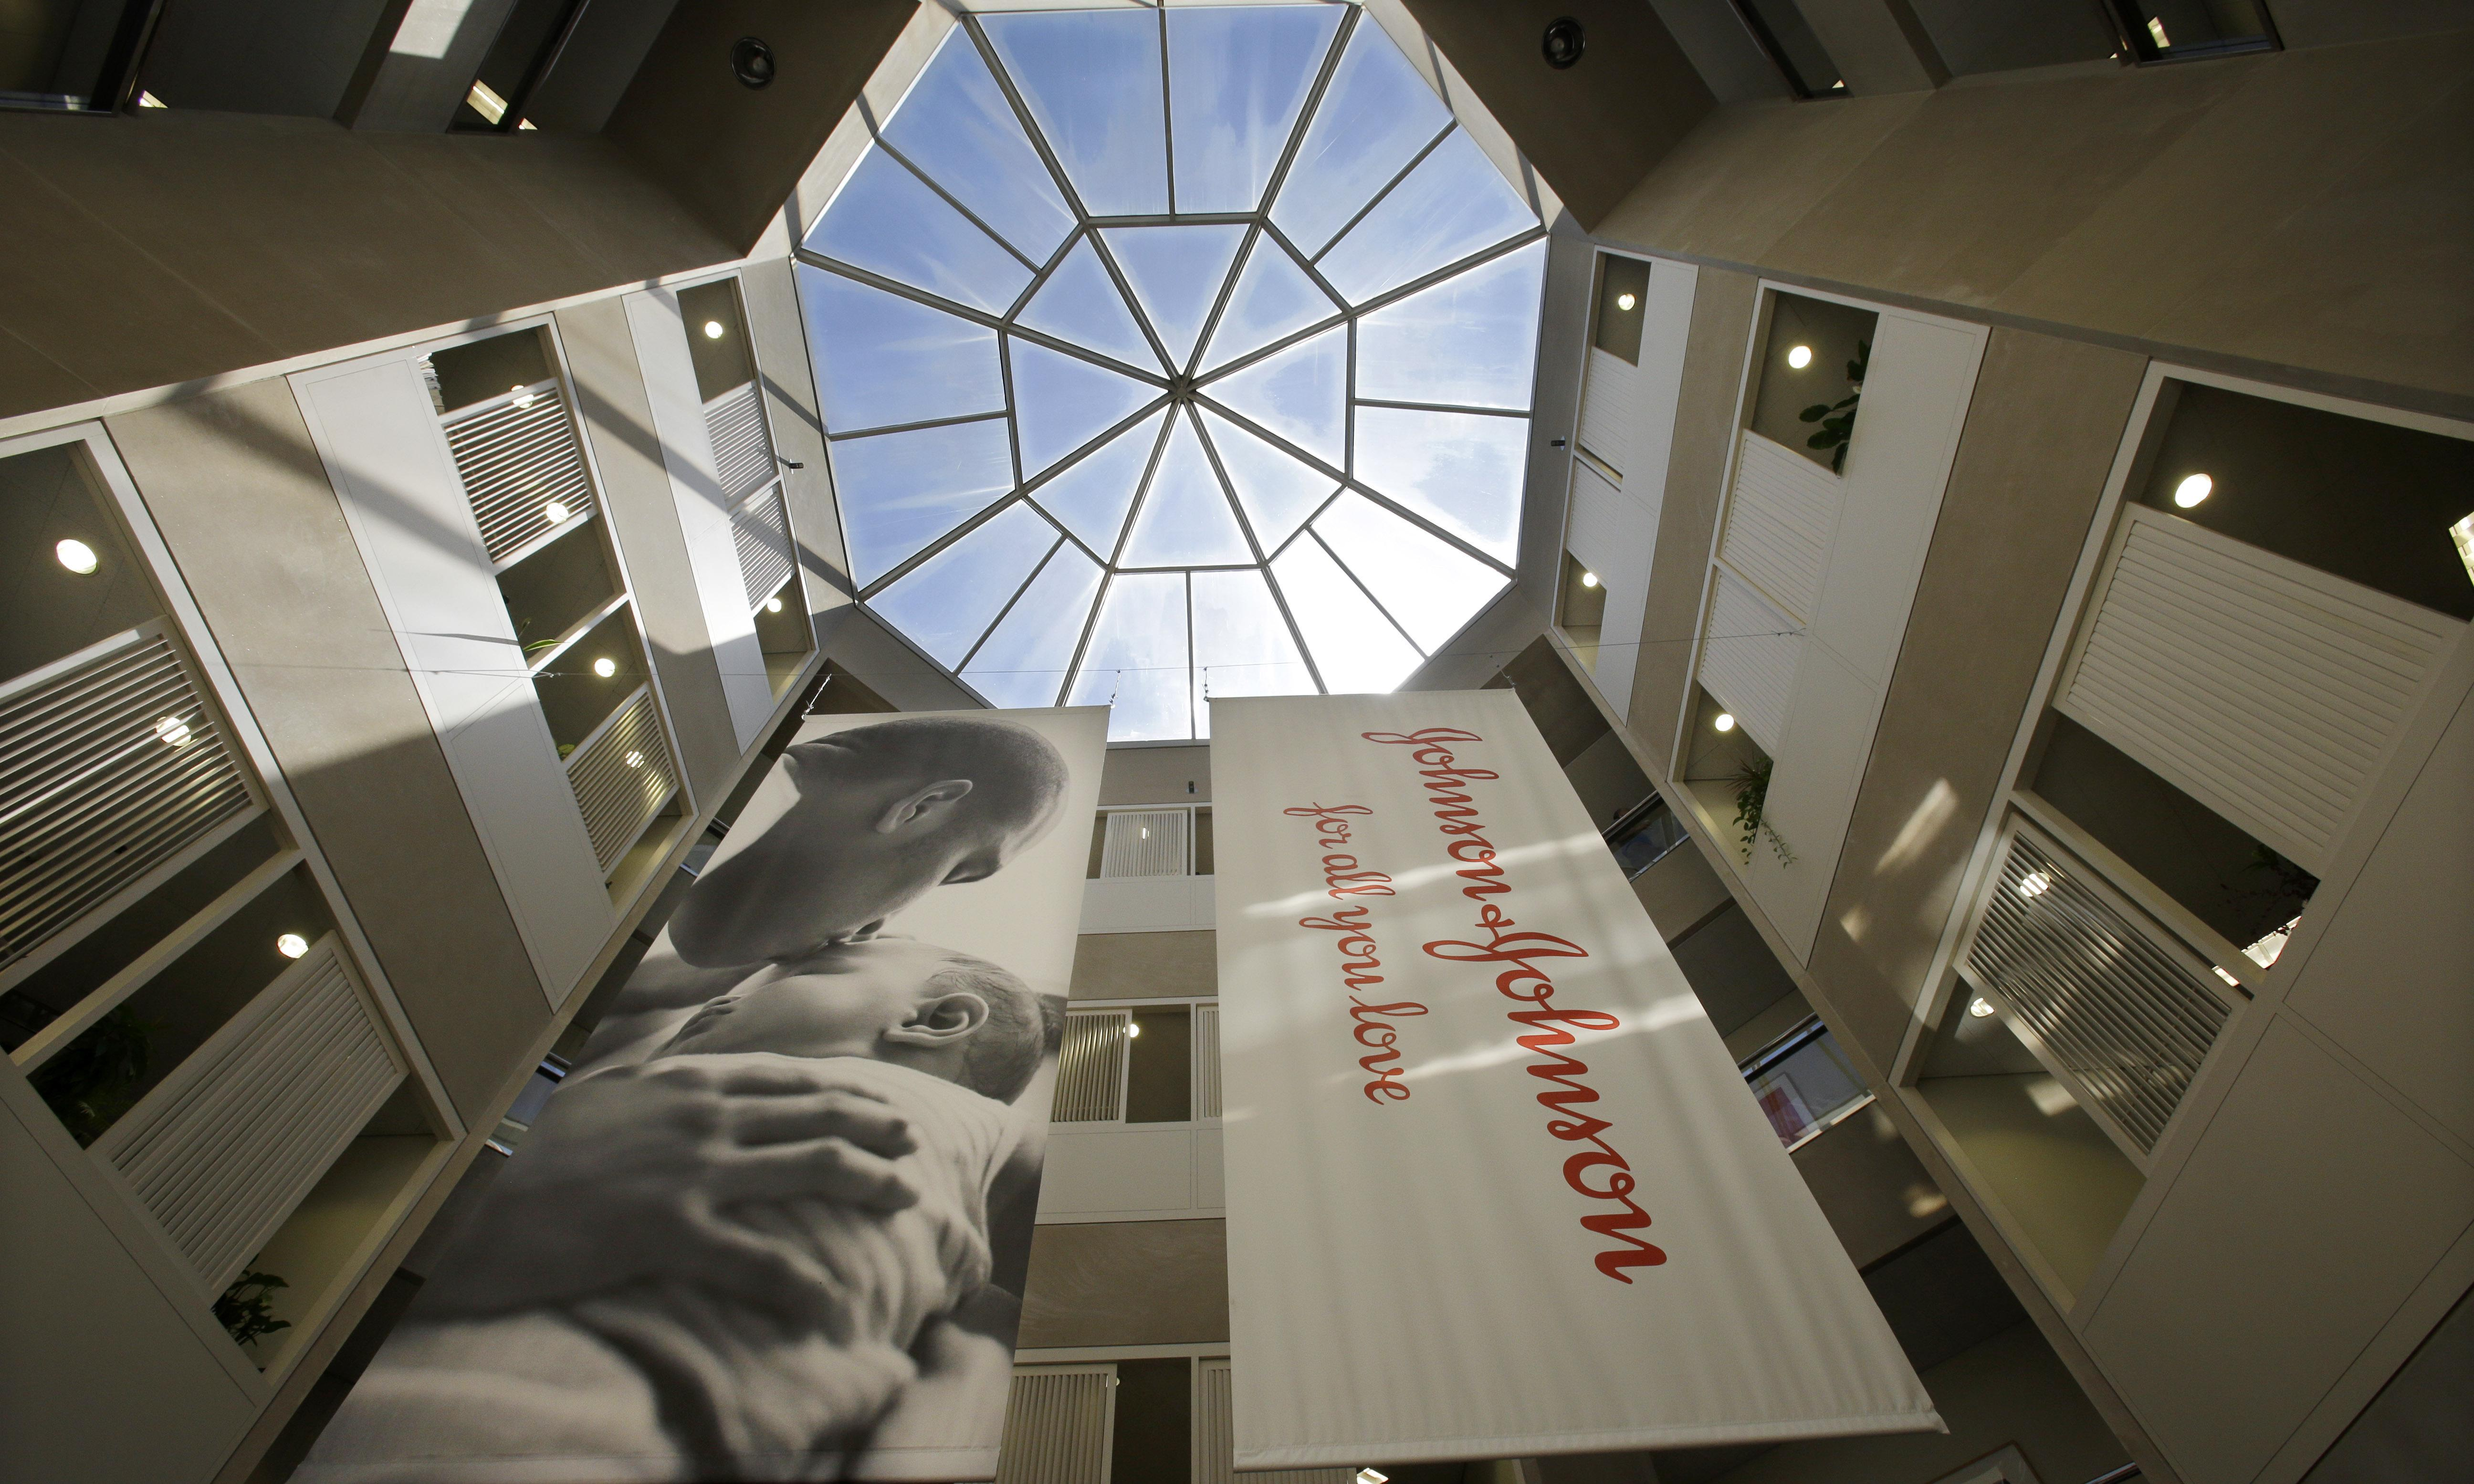 Johnson & Johnson signals climbdown ahead of major opioids crisis test case